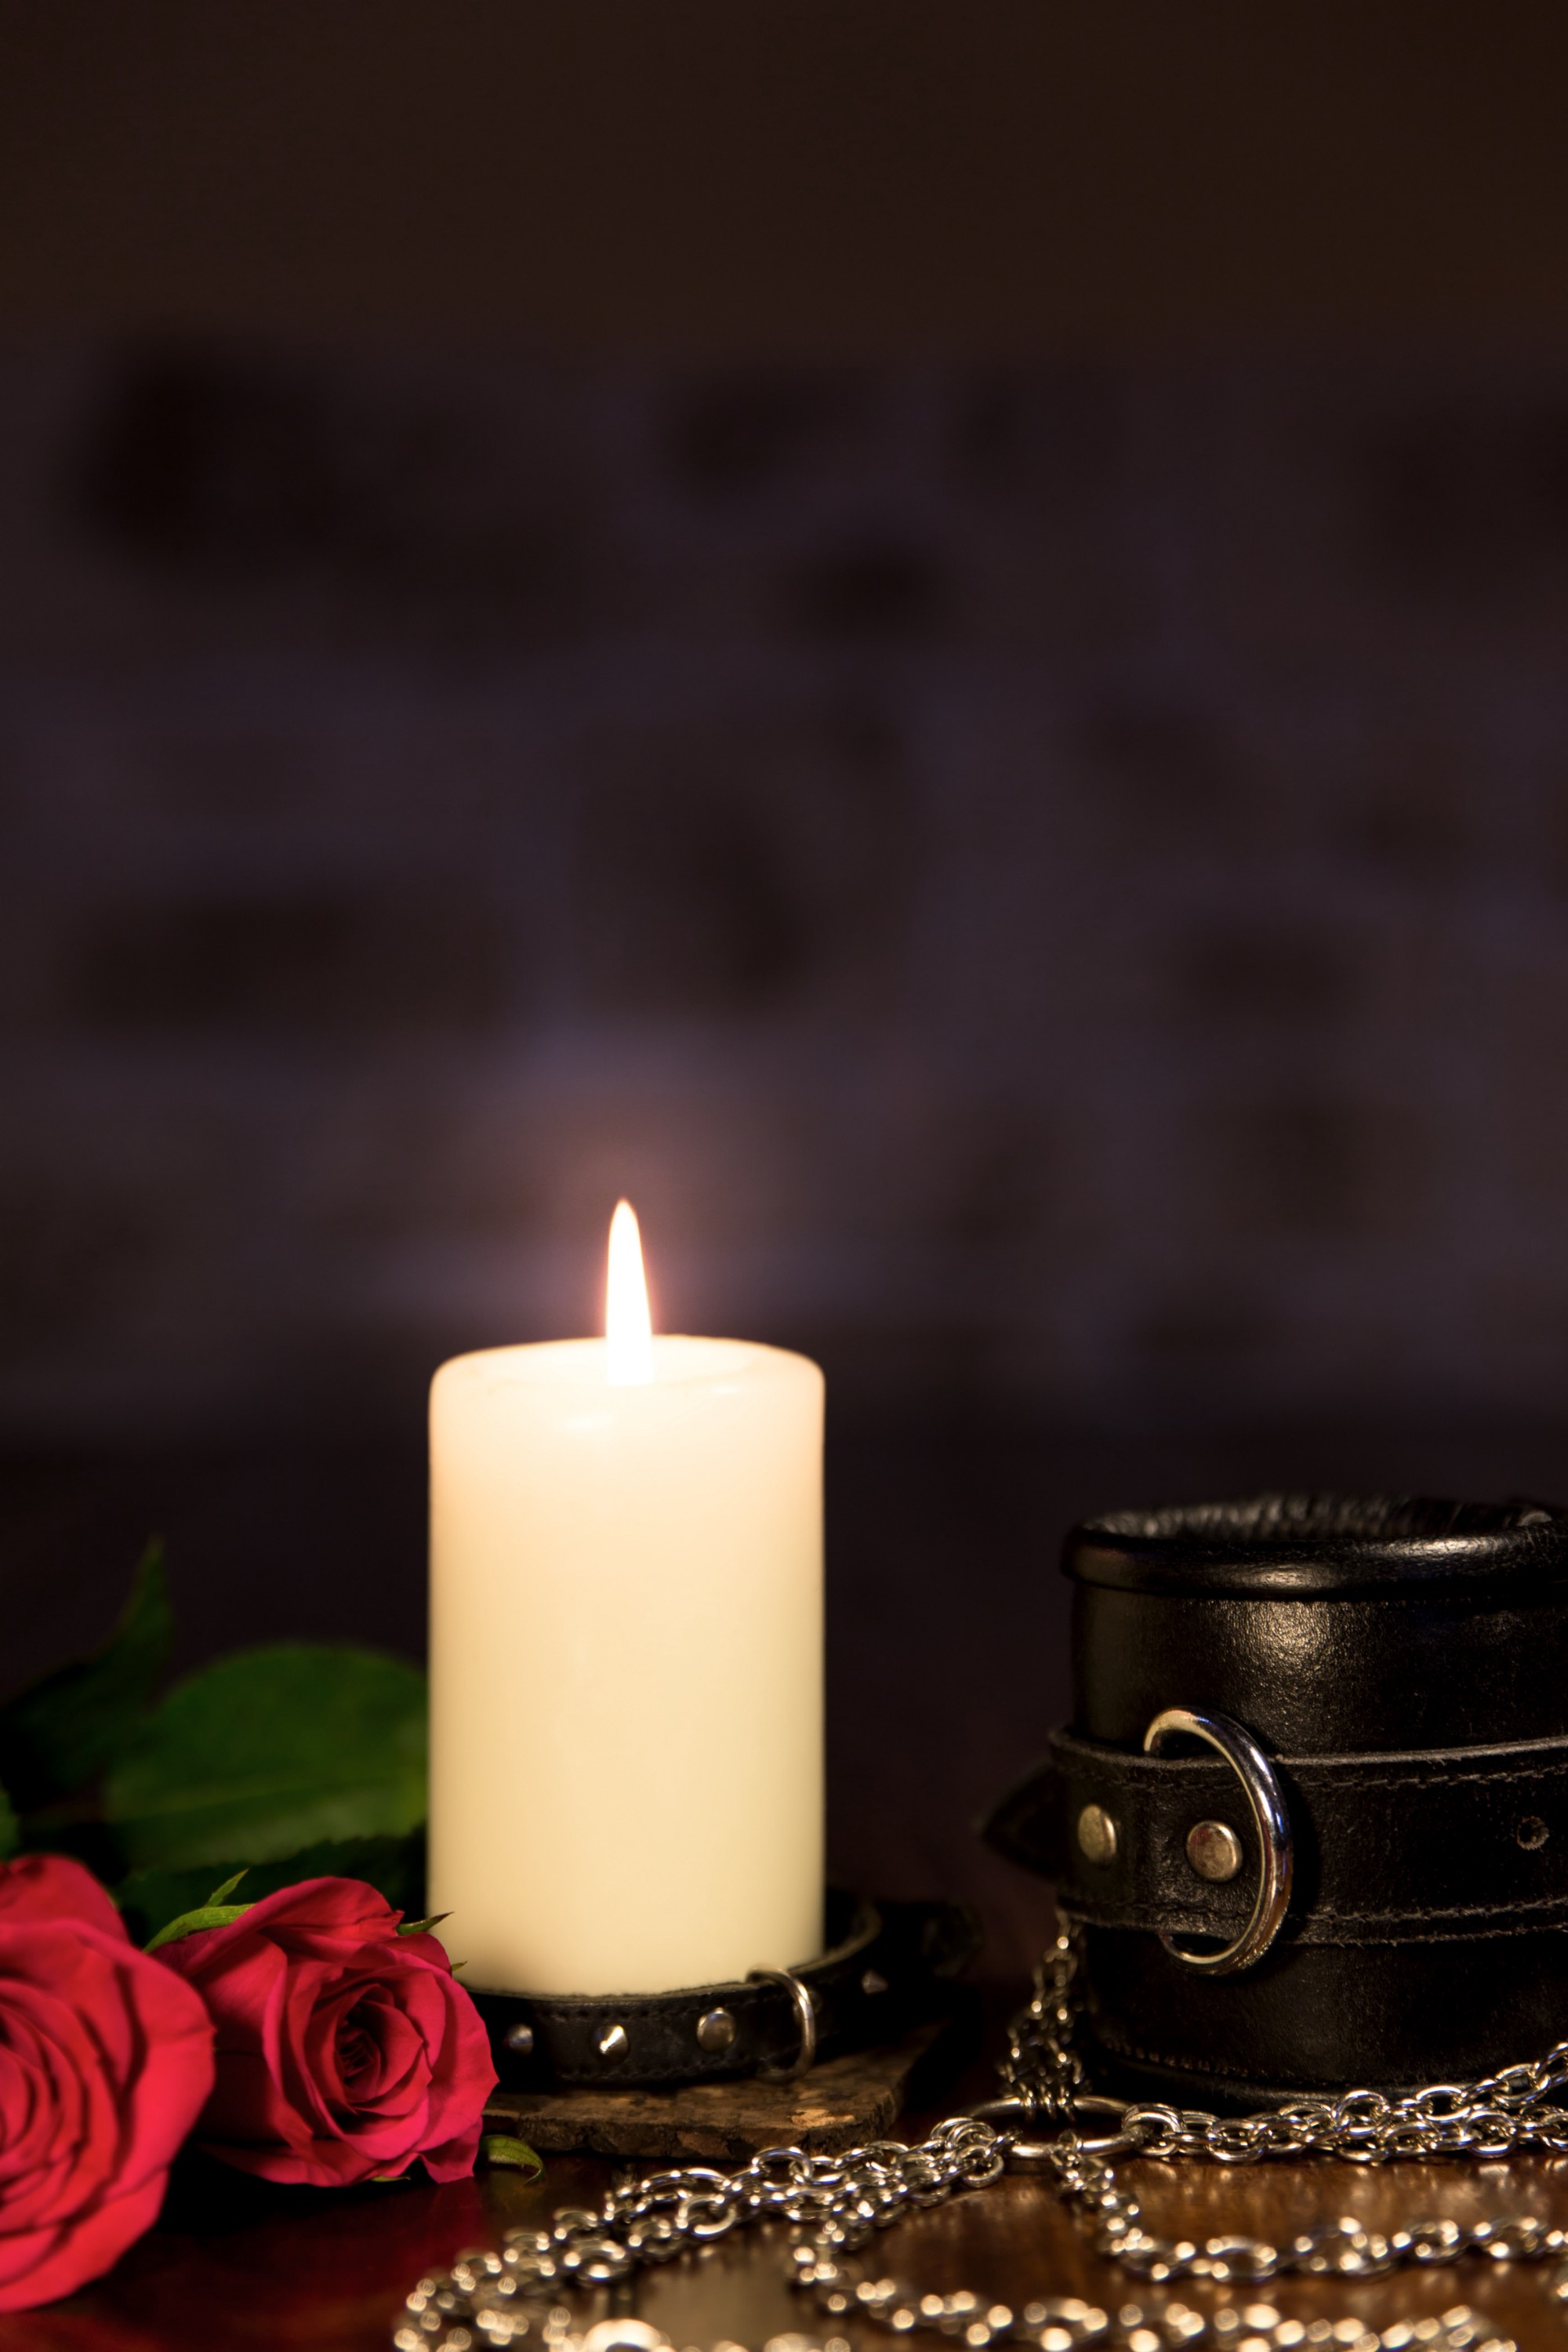 lit candle with bdsm accroutements